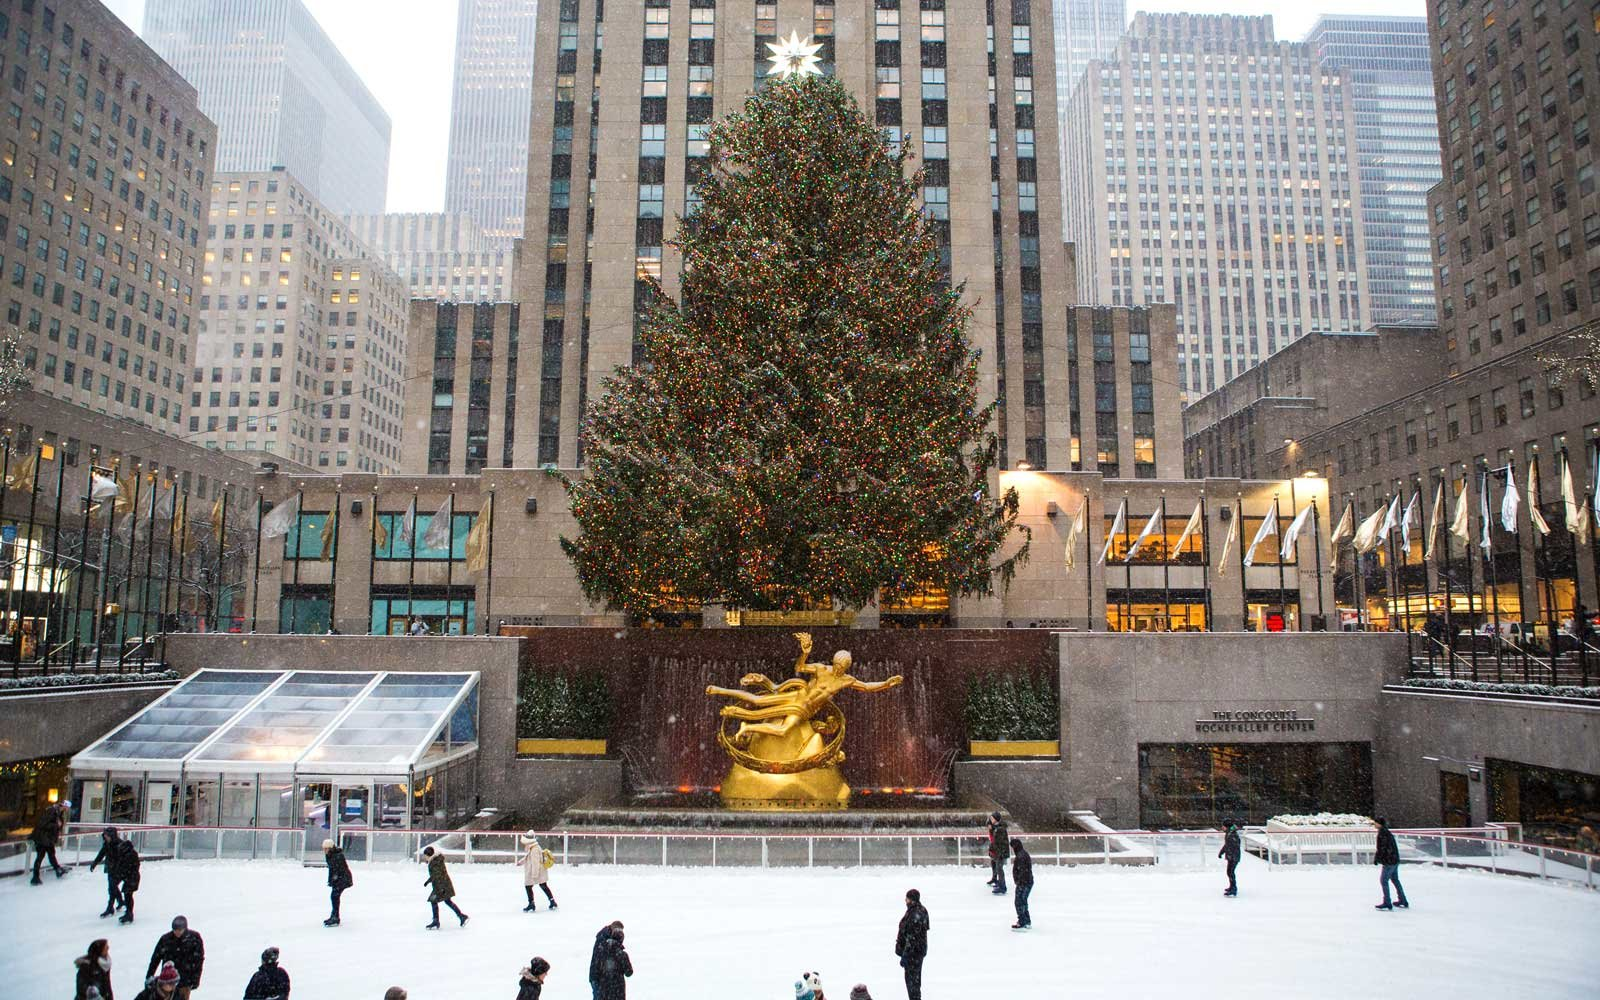 Rockefeller Center Christmas tree and ice skating rink